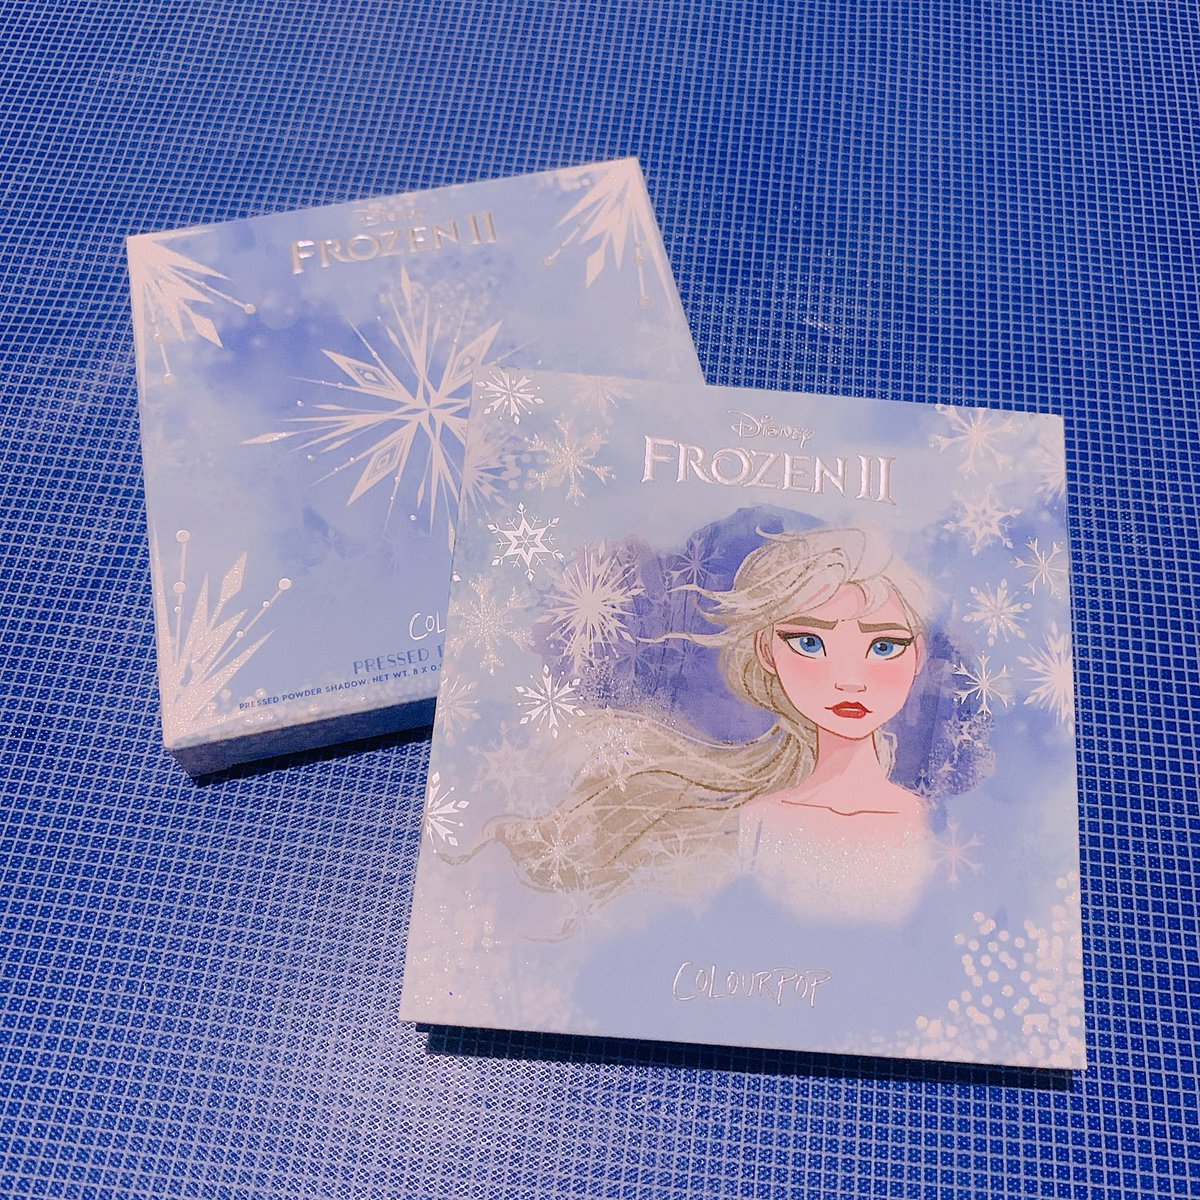 ajdjfJSKFKTLE SHE'S HEREEE she's so gorgeous i can't wait to plaY 🥺💕 #frozen2 #frozen2andcolourpop